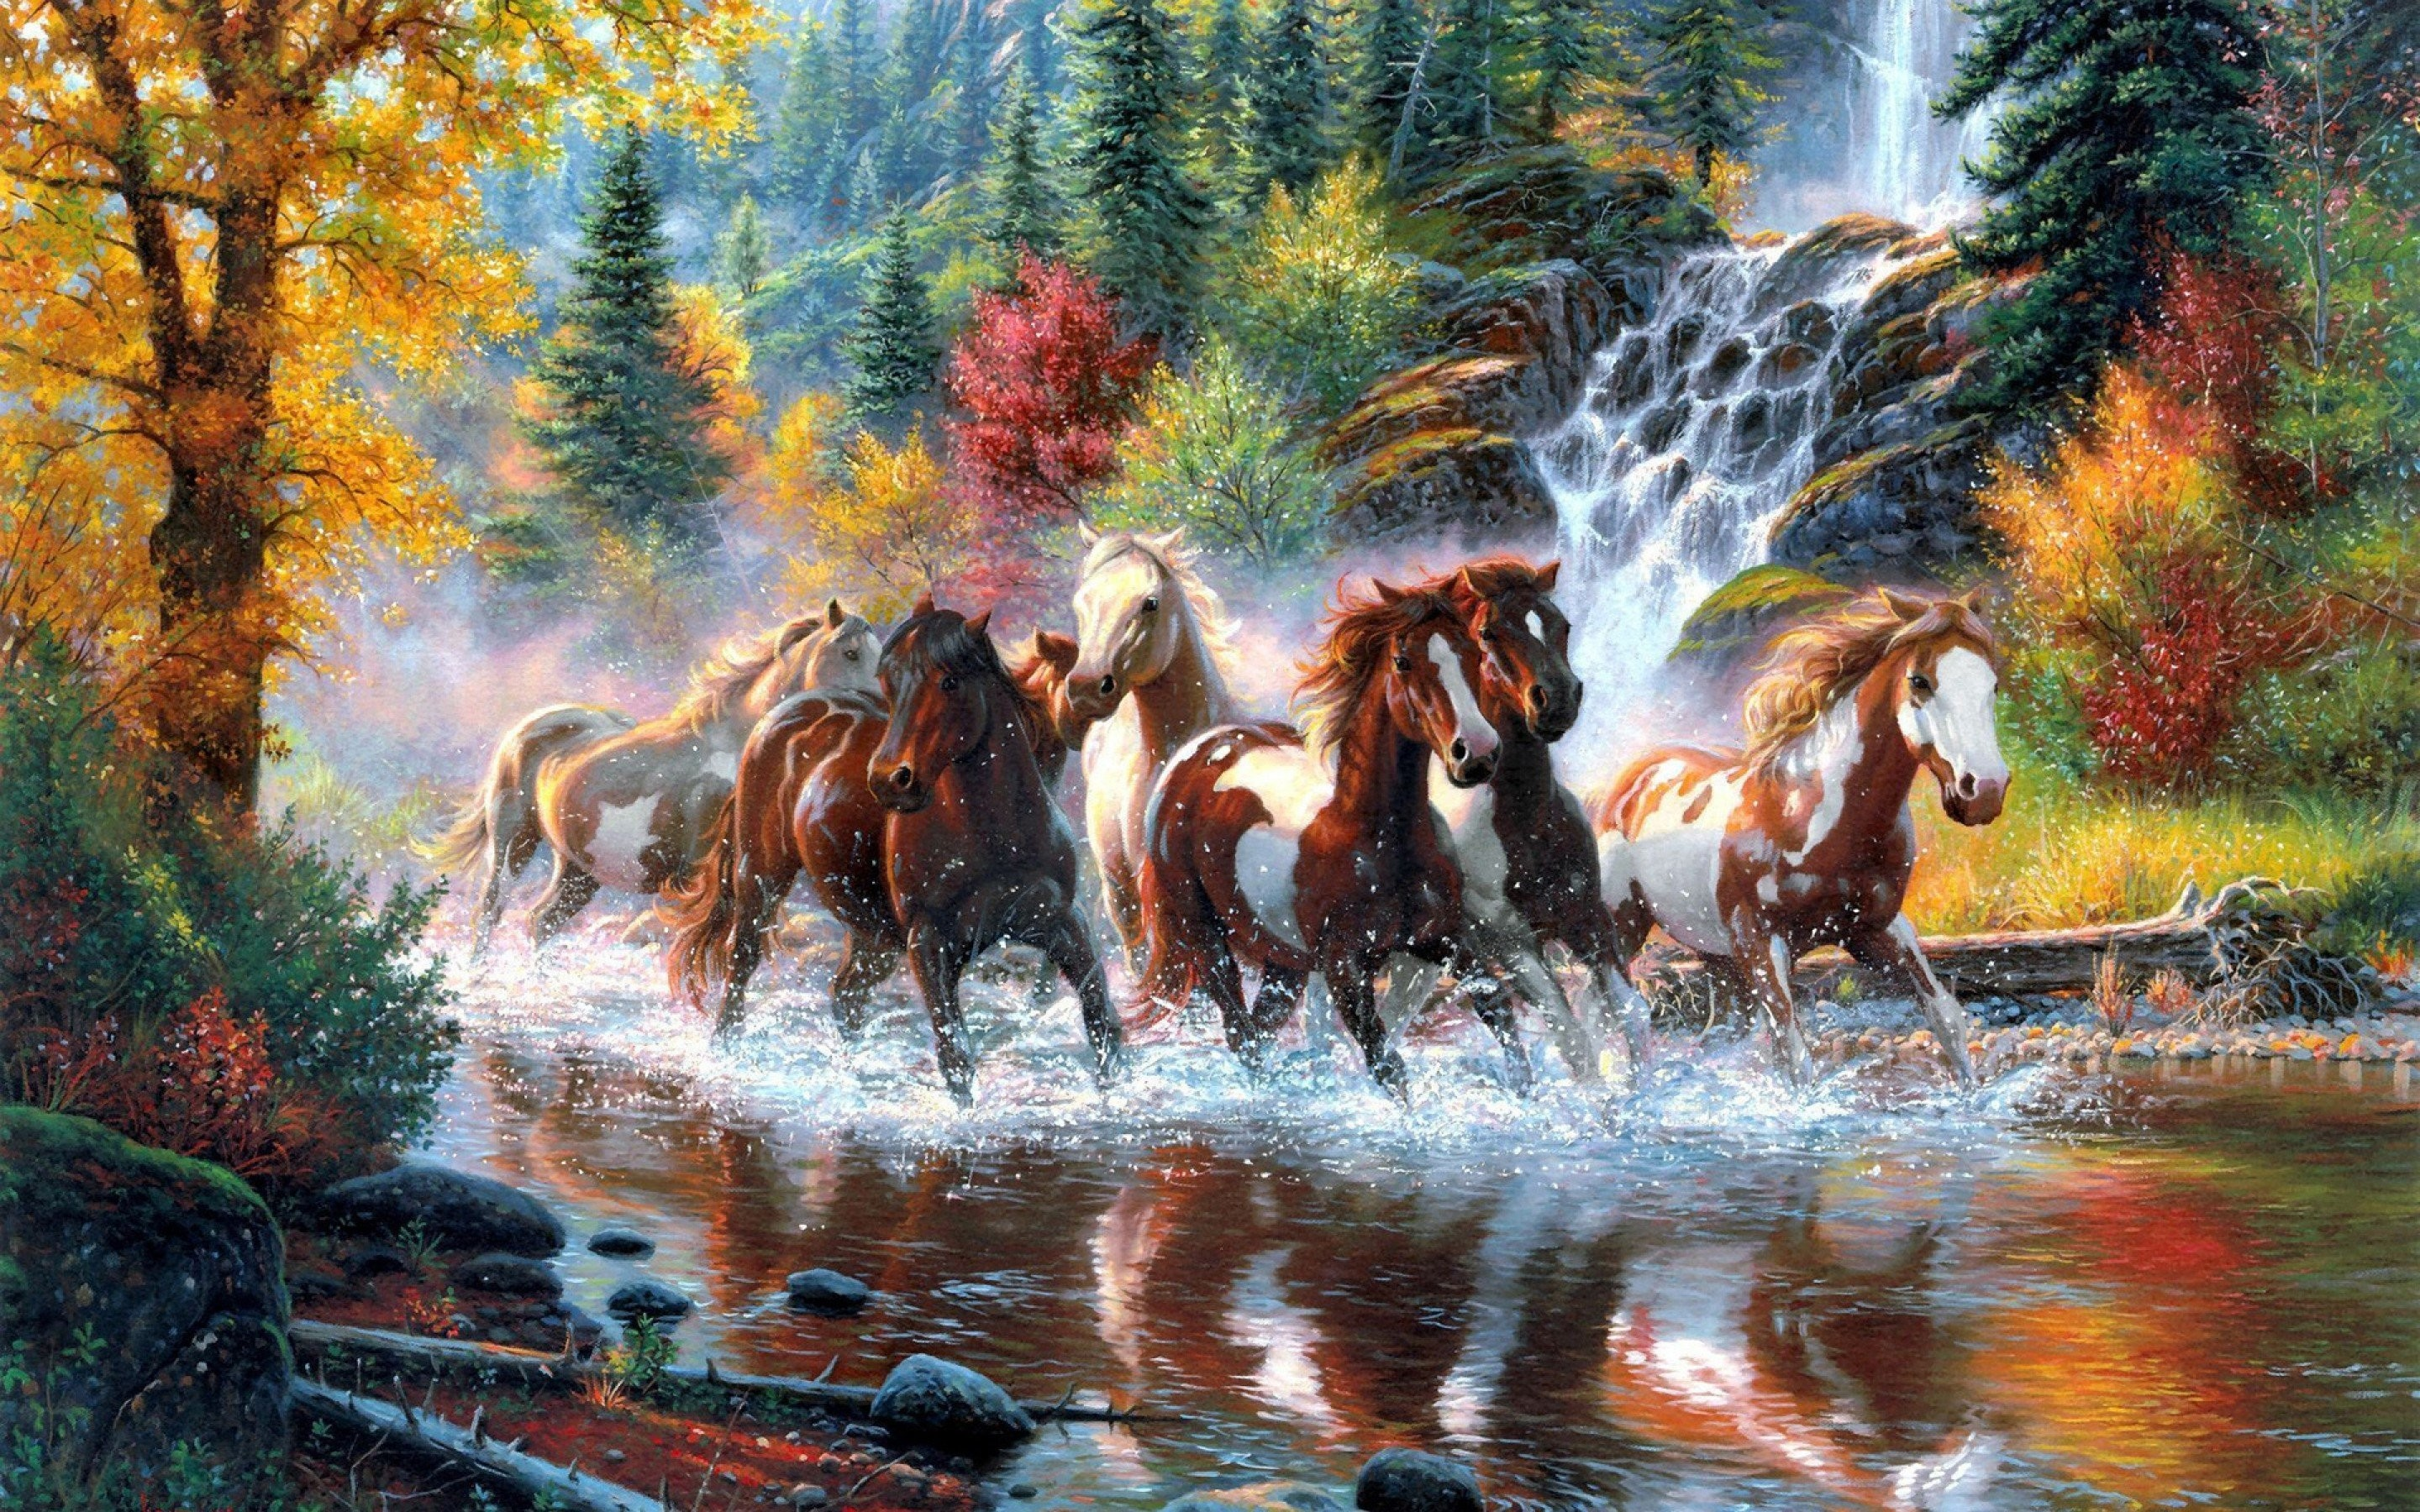 7 Horse Wallpaper For Mobile 114722 Hd Wallpaper Backgrounds Download